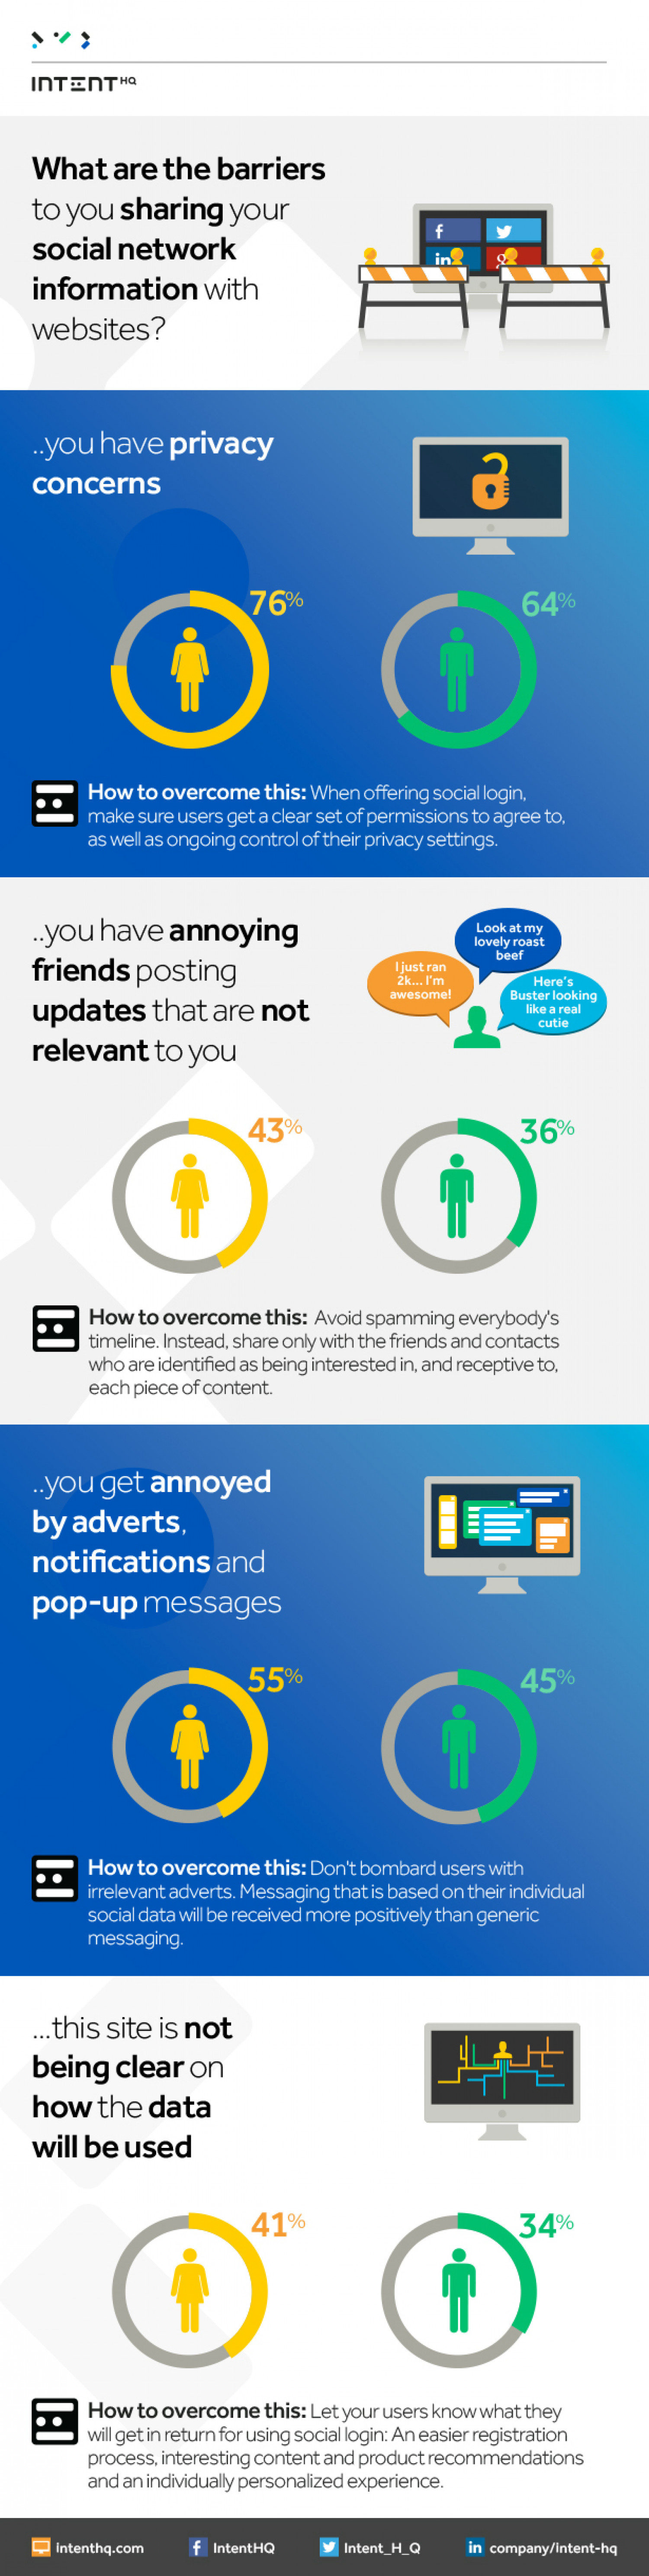 The Barriers To Sharing Your Social Network Information Infographic